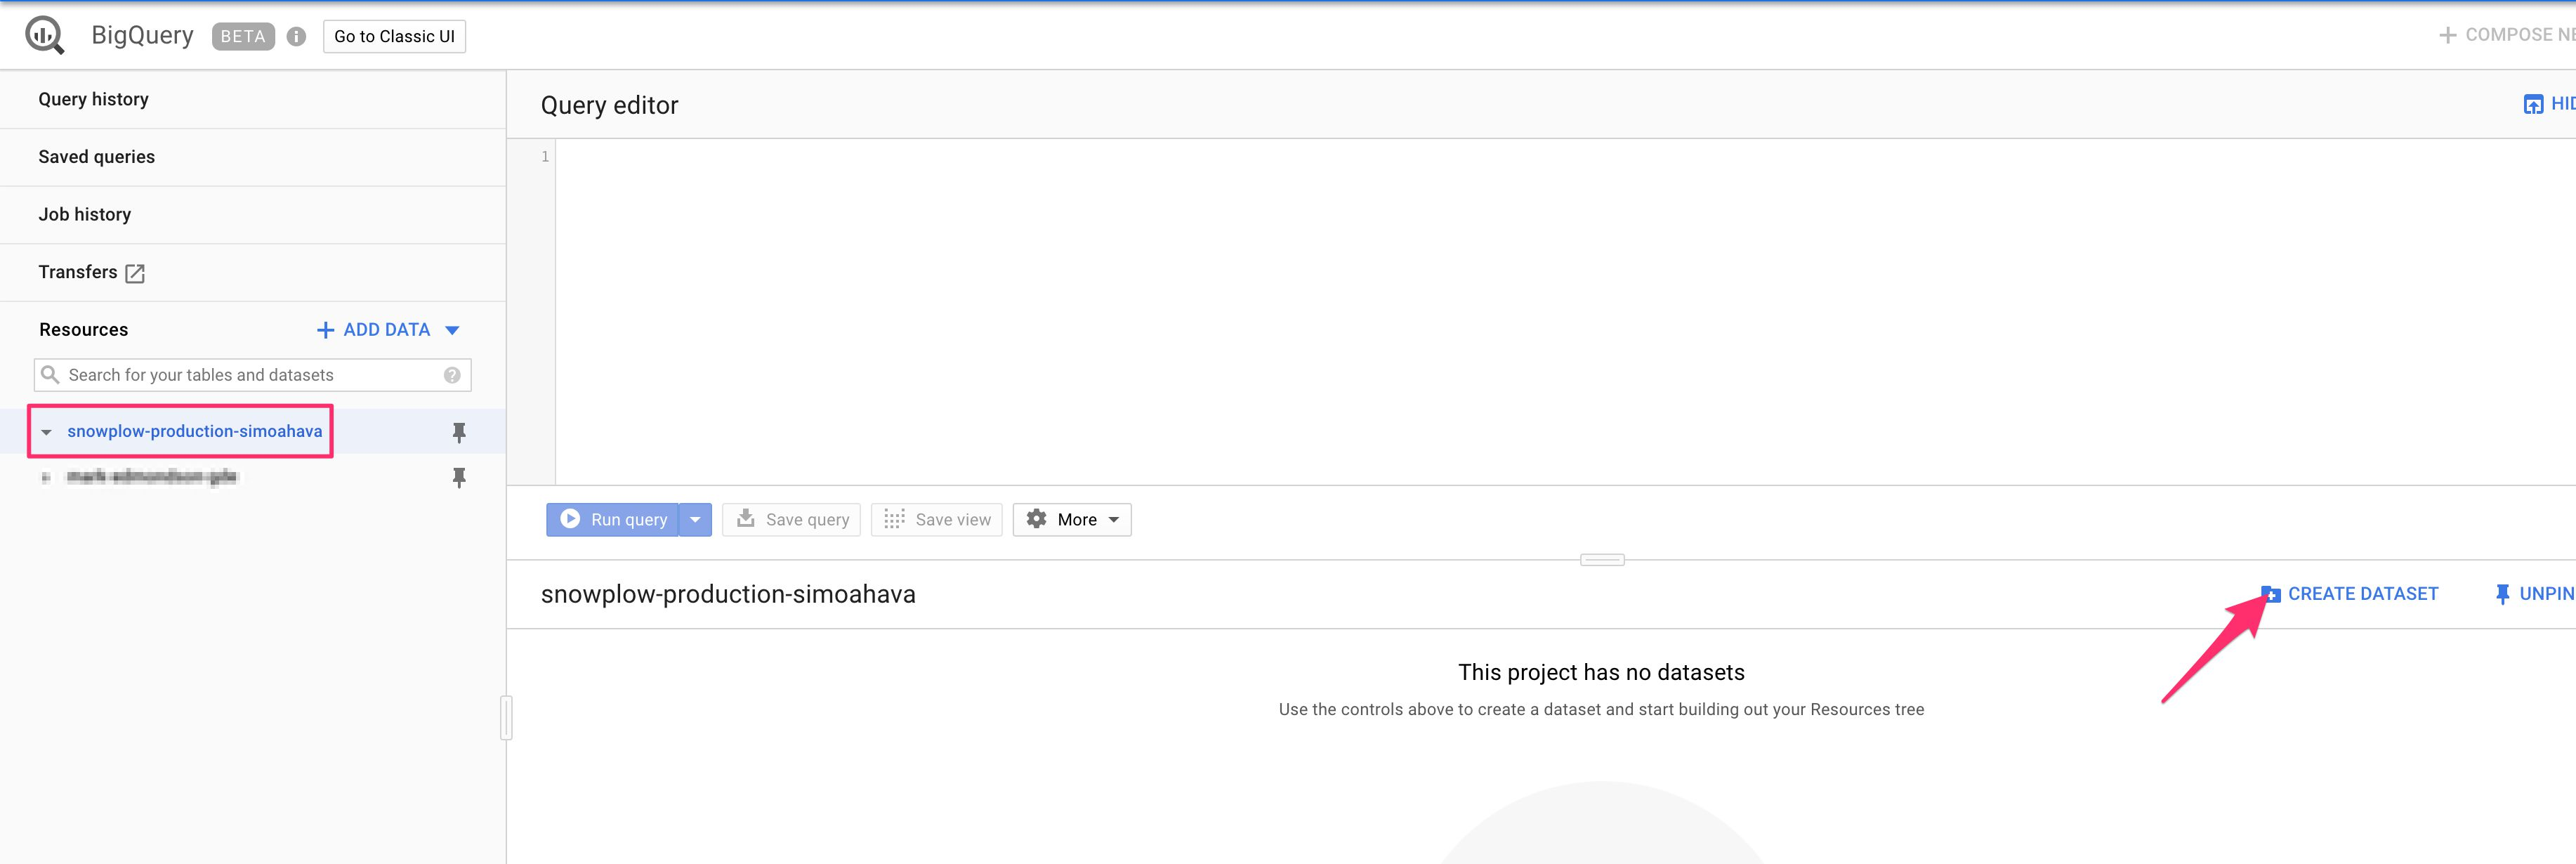 Install Snowplow On The Google Cloud Platform | Simo Ahava's